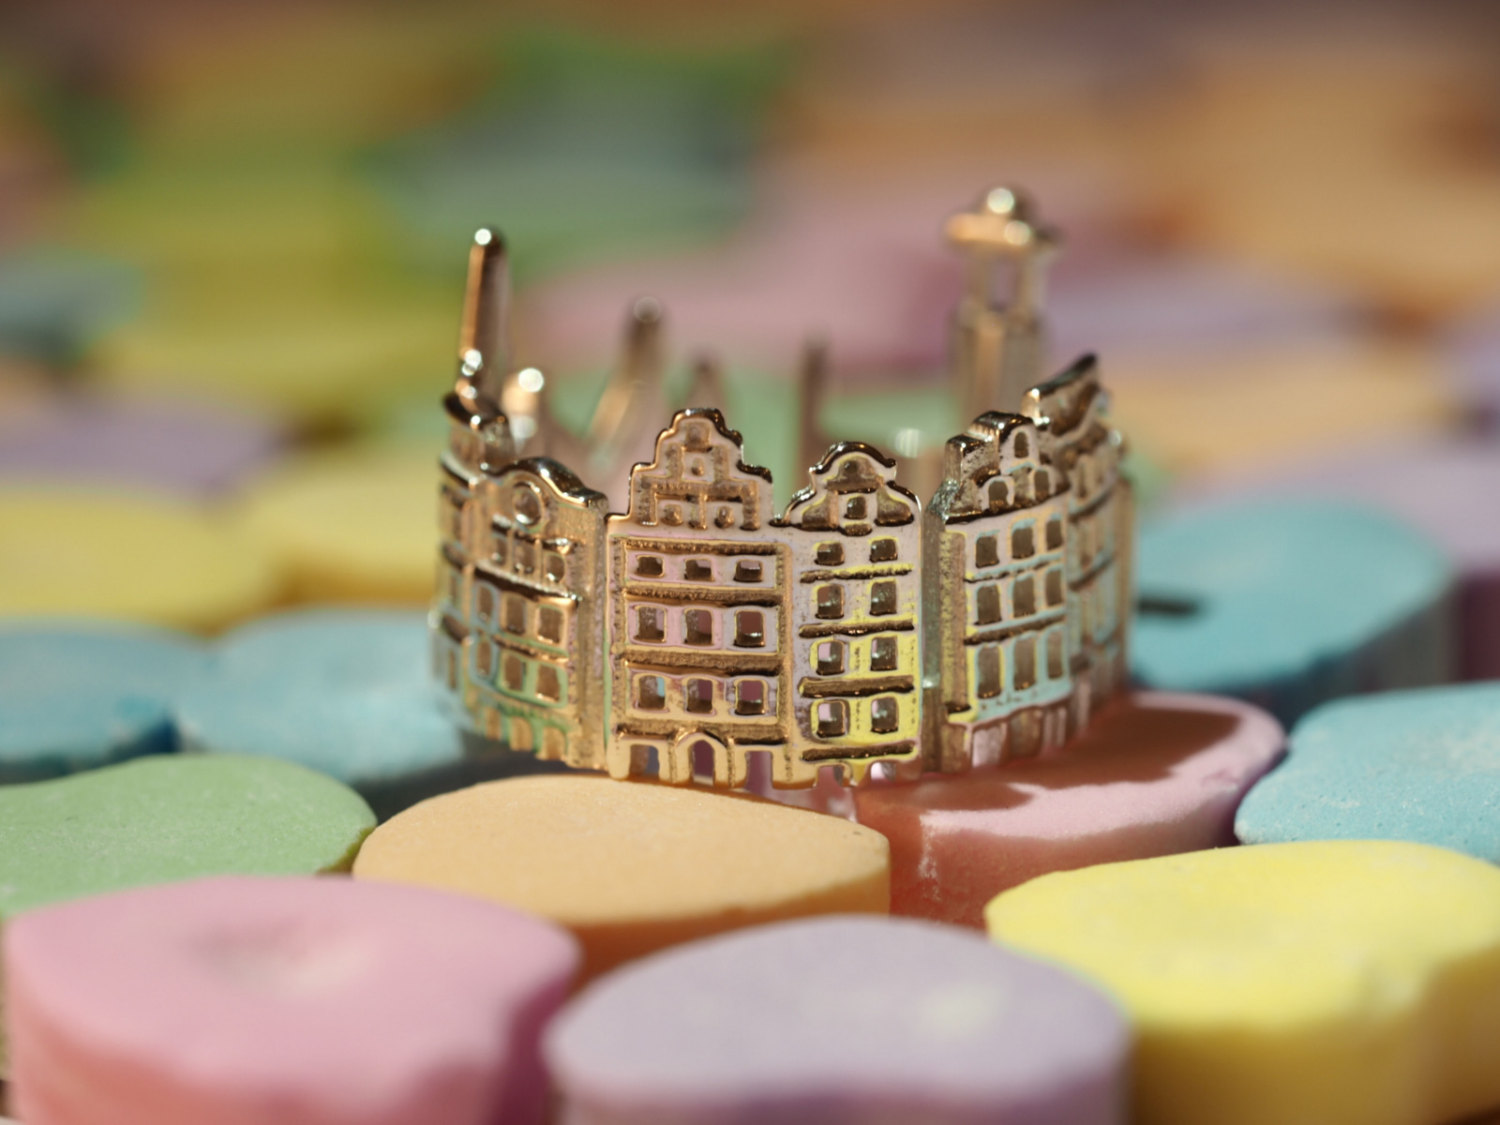 13-Stockholm-Ola-Shekhtman-Memories-contained-in-Architectural-Cityscape-Skyline-Rings-www-designstack-co